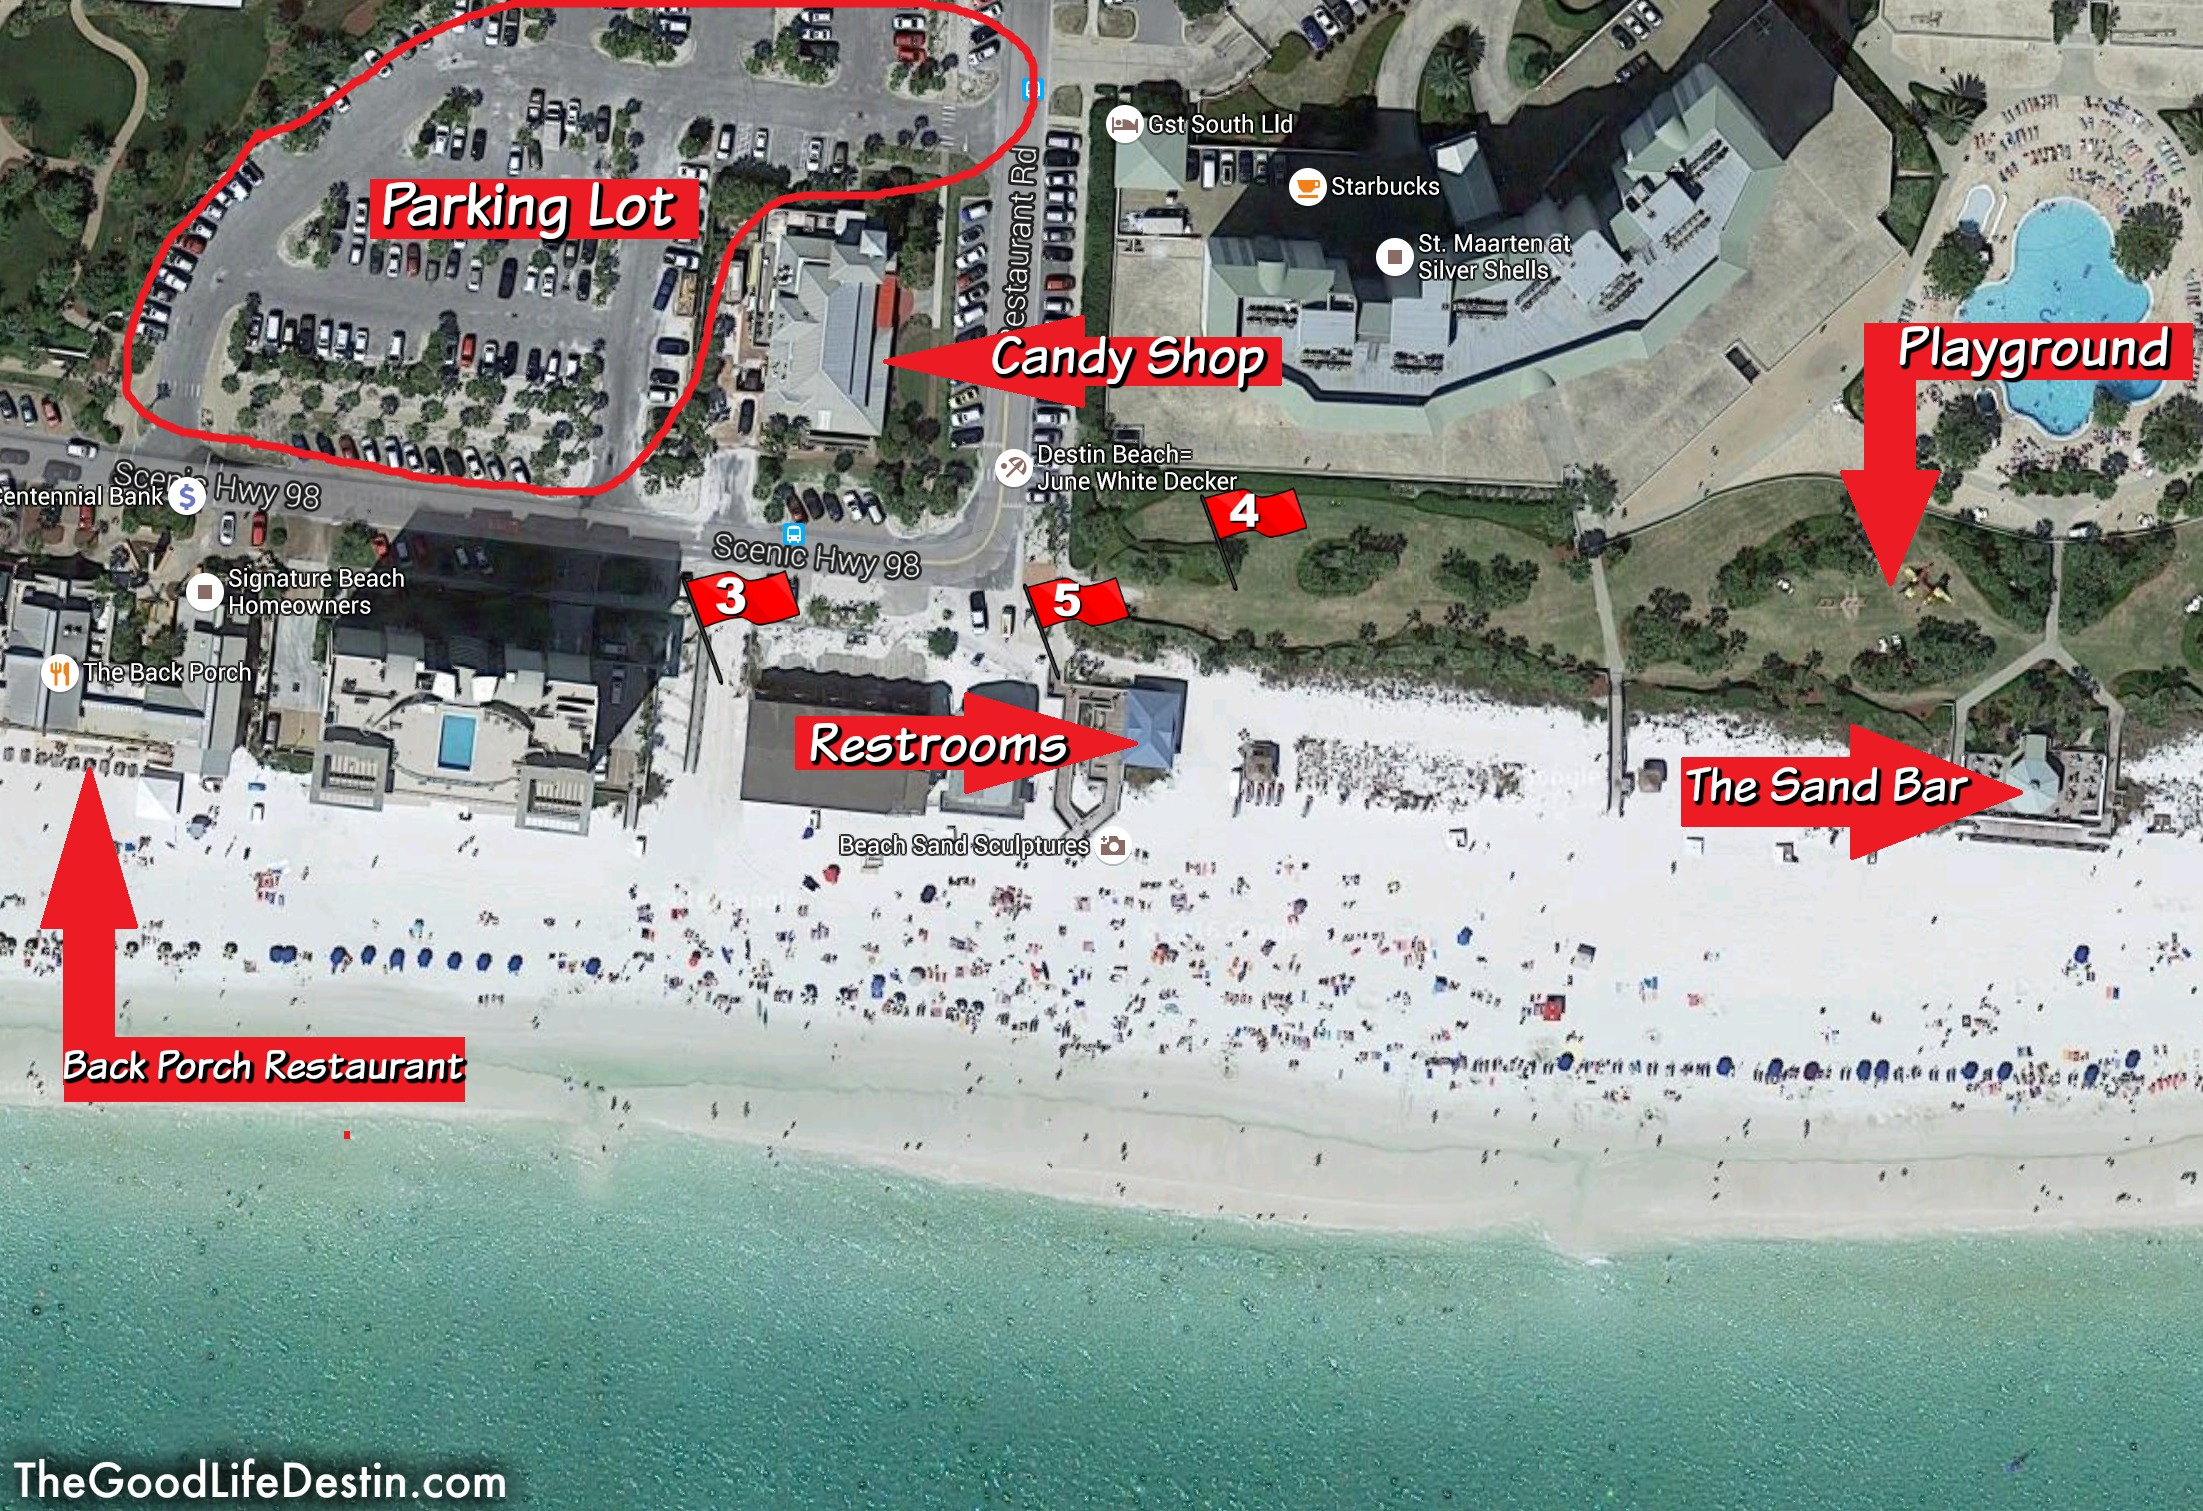 Find Your Perfect Beach In Destin Florida - The Good Life Destin - Destin Florida Map Of Beaches